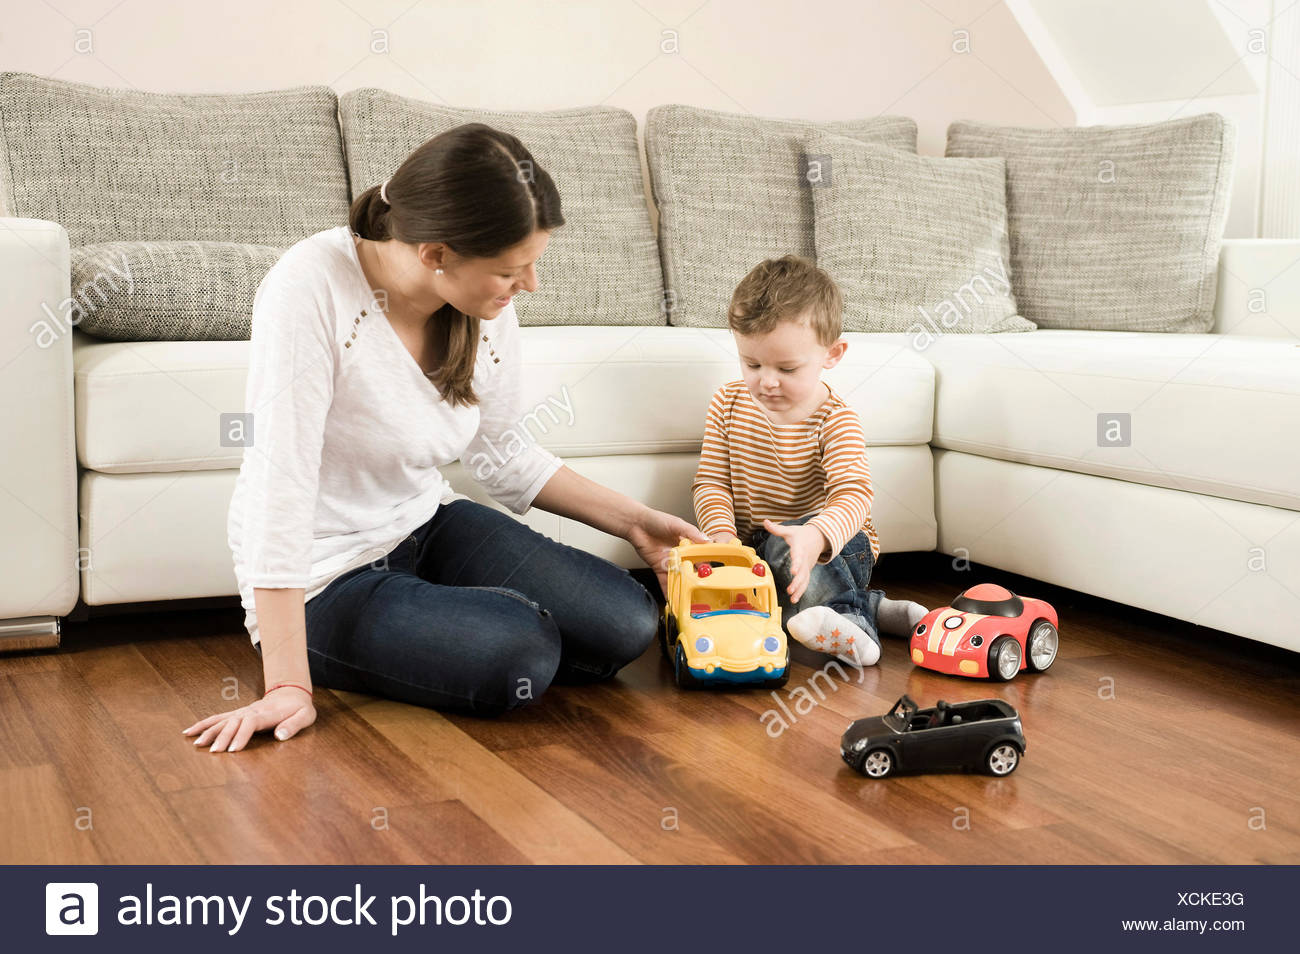 Mother and son playing with toys - Stock Image